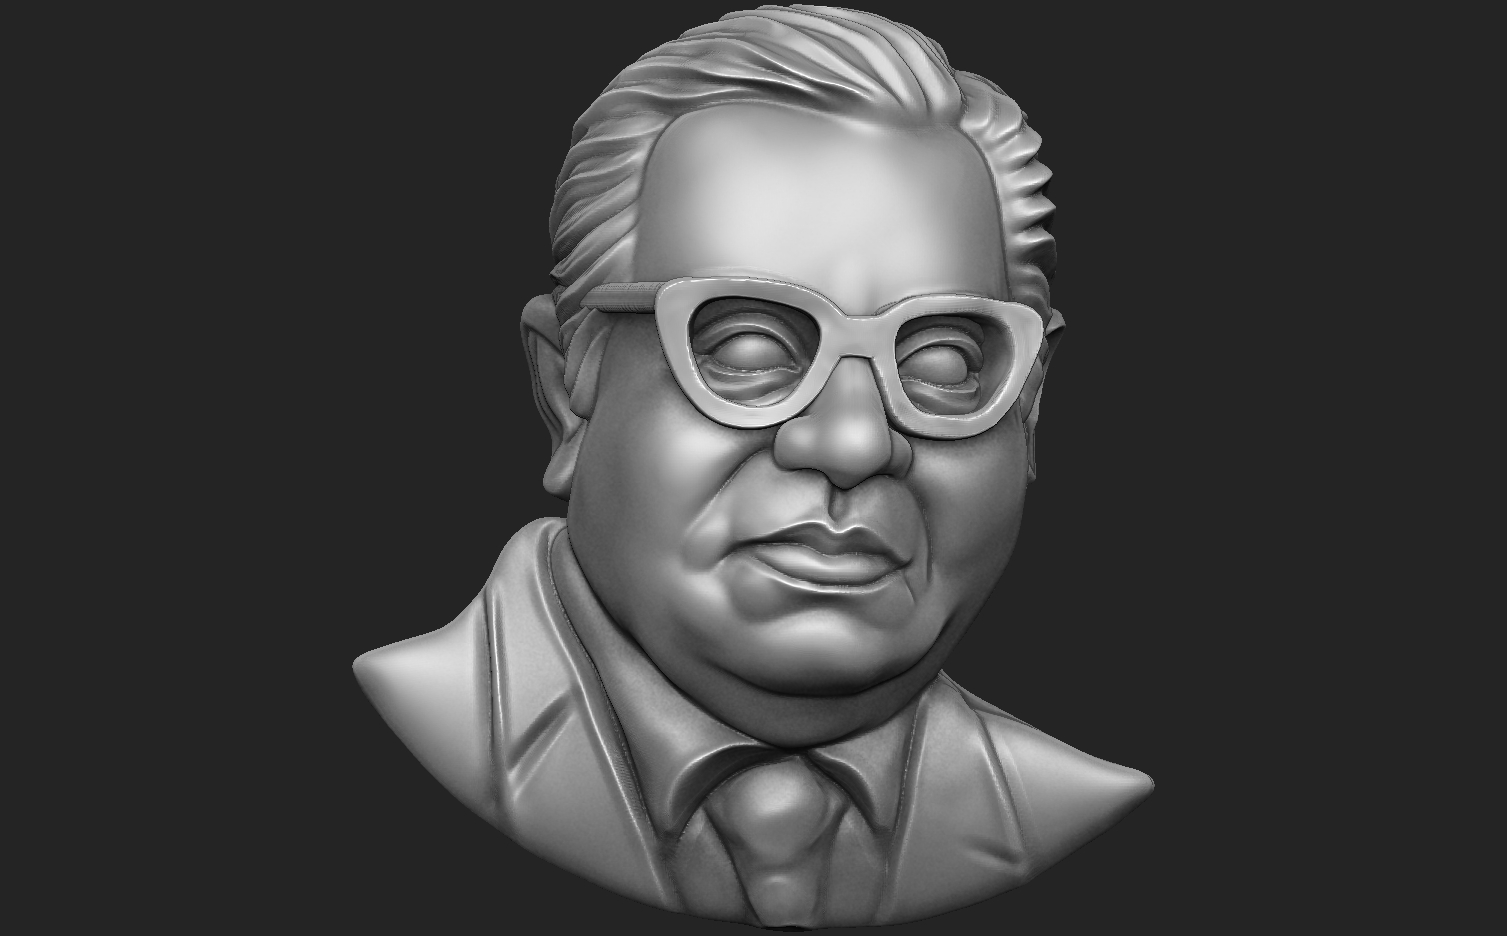 b r ambedkar Bhimrao ramji ambedkar (14 april 1891 – 6 december 1956), popularly known as babasaheb (marathi: endearment for father), was an indian polymath - jurist, economist, politician, educationist.